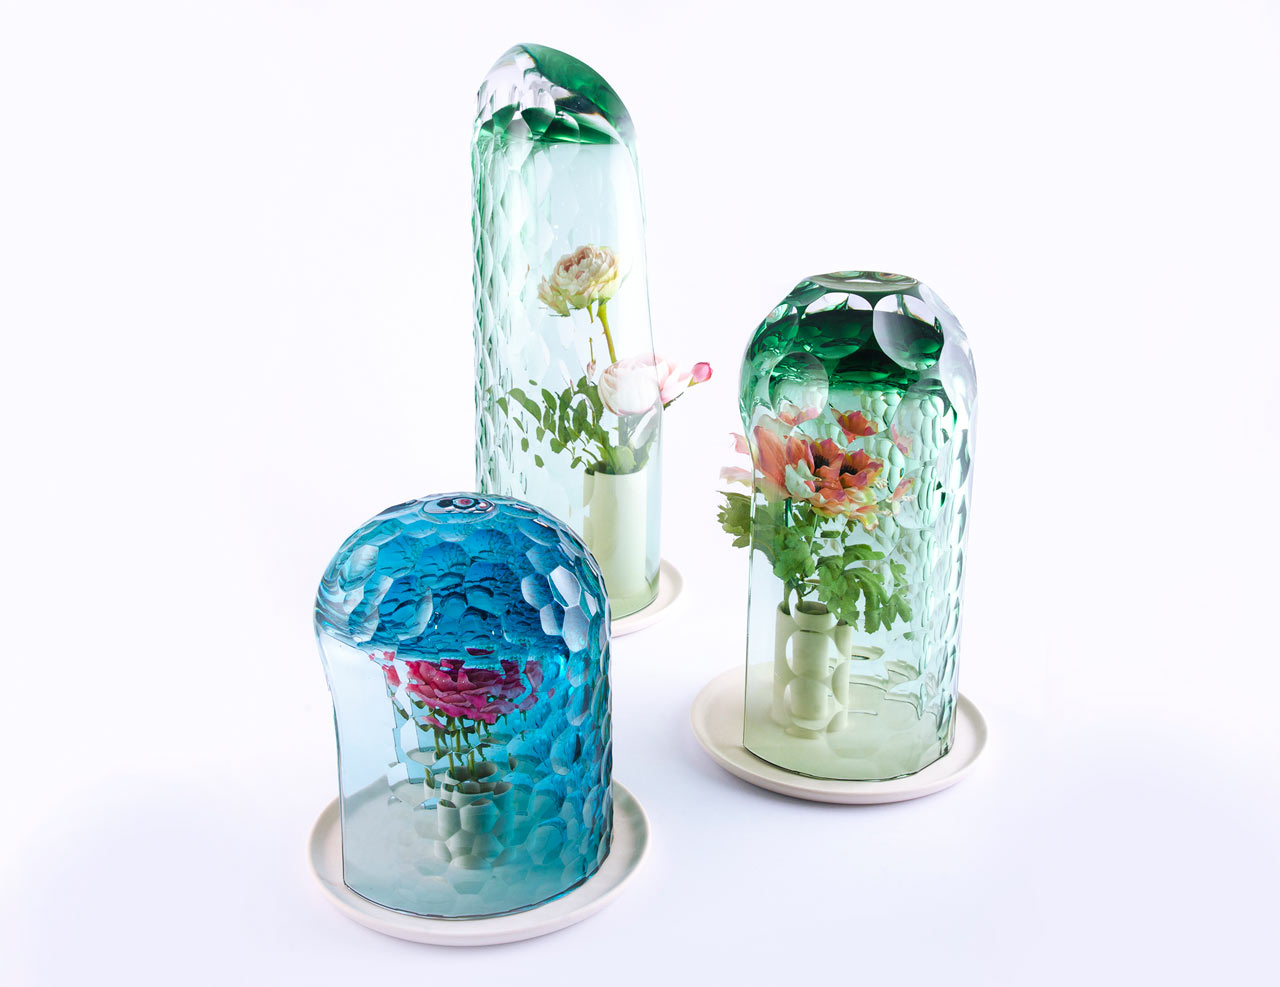 Glass Vases that Create Visual Distortions